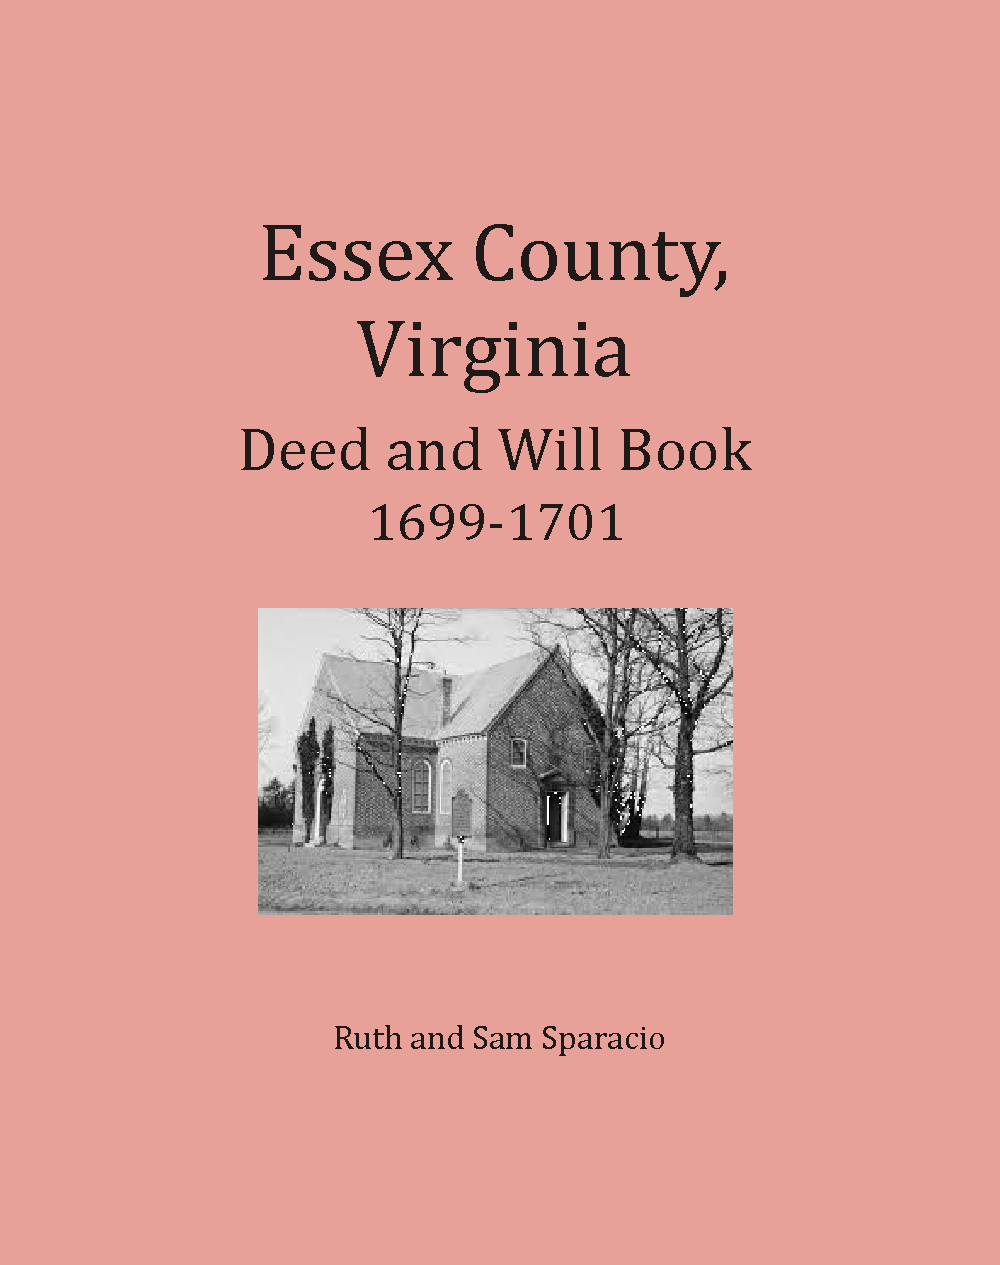 Essex County, Virginia Deed and Will Abstracts 1699-1701